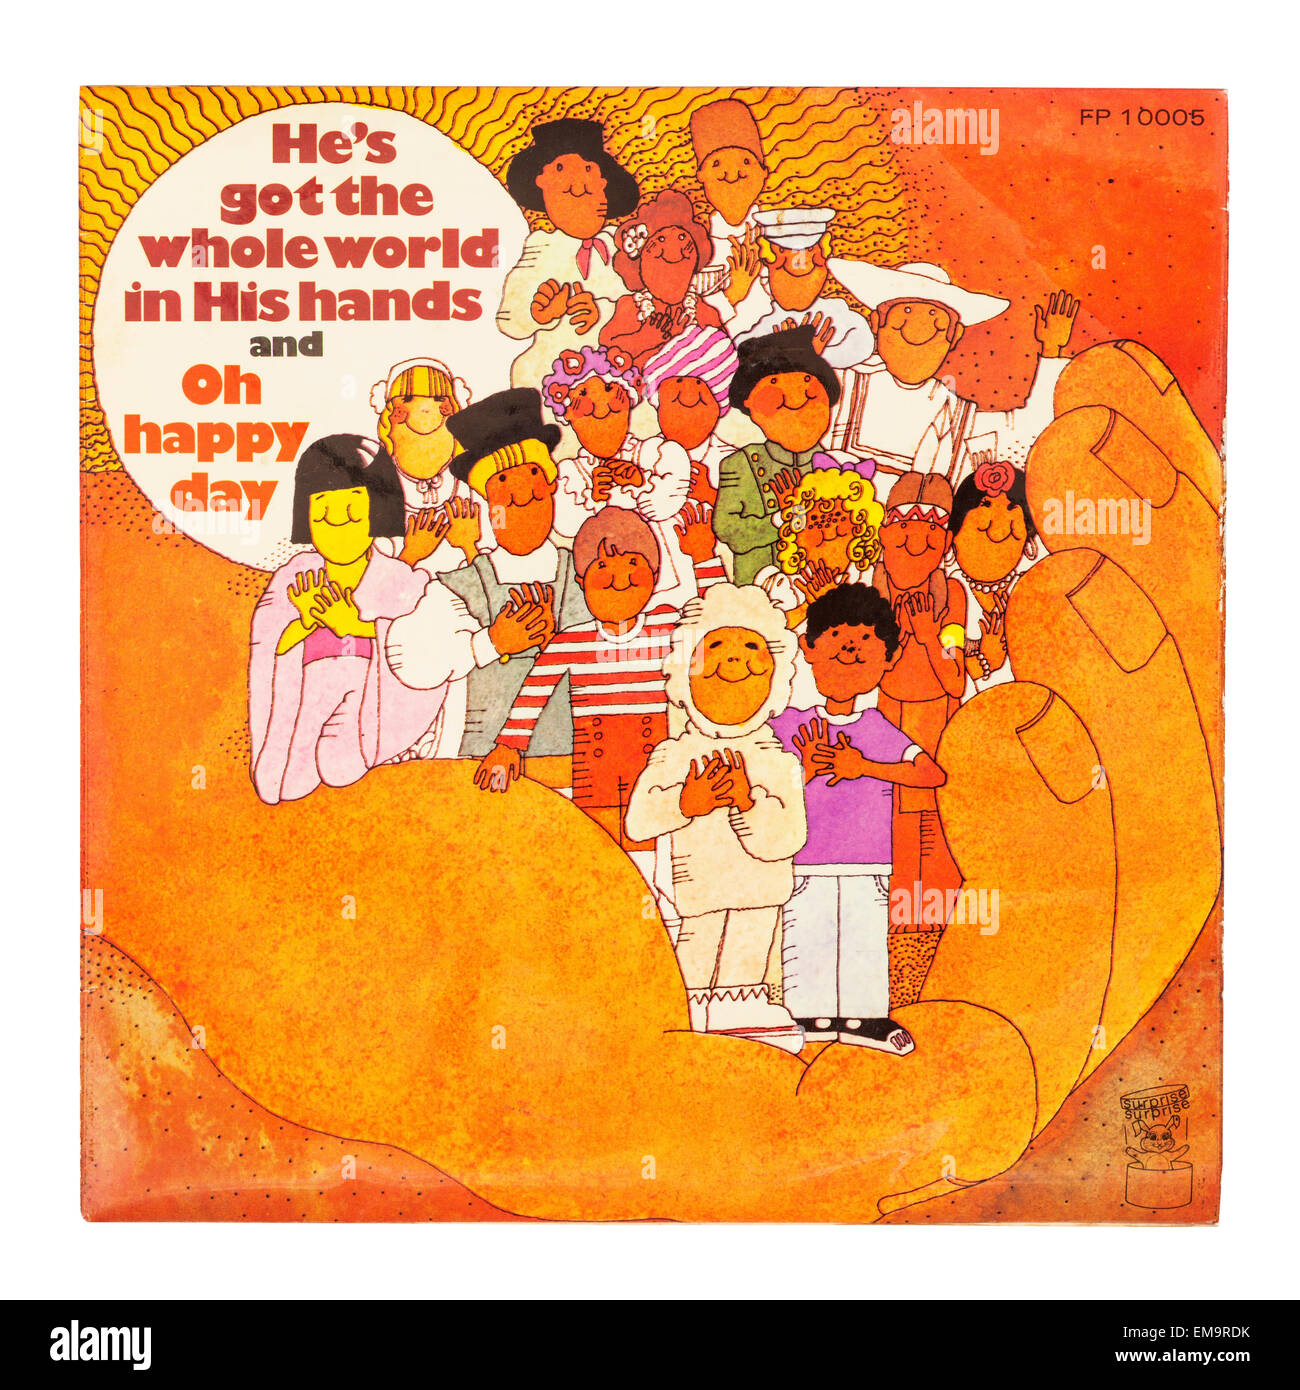 A Childrens Vinyl record called He's got the whole world in his hands on a white background Stock Photo